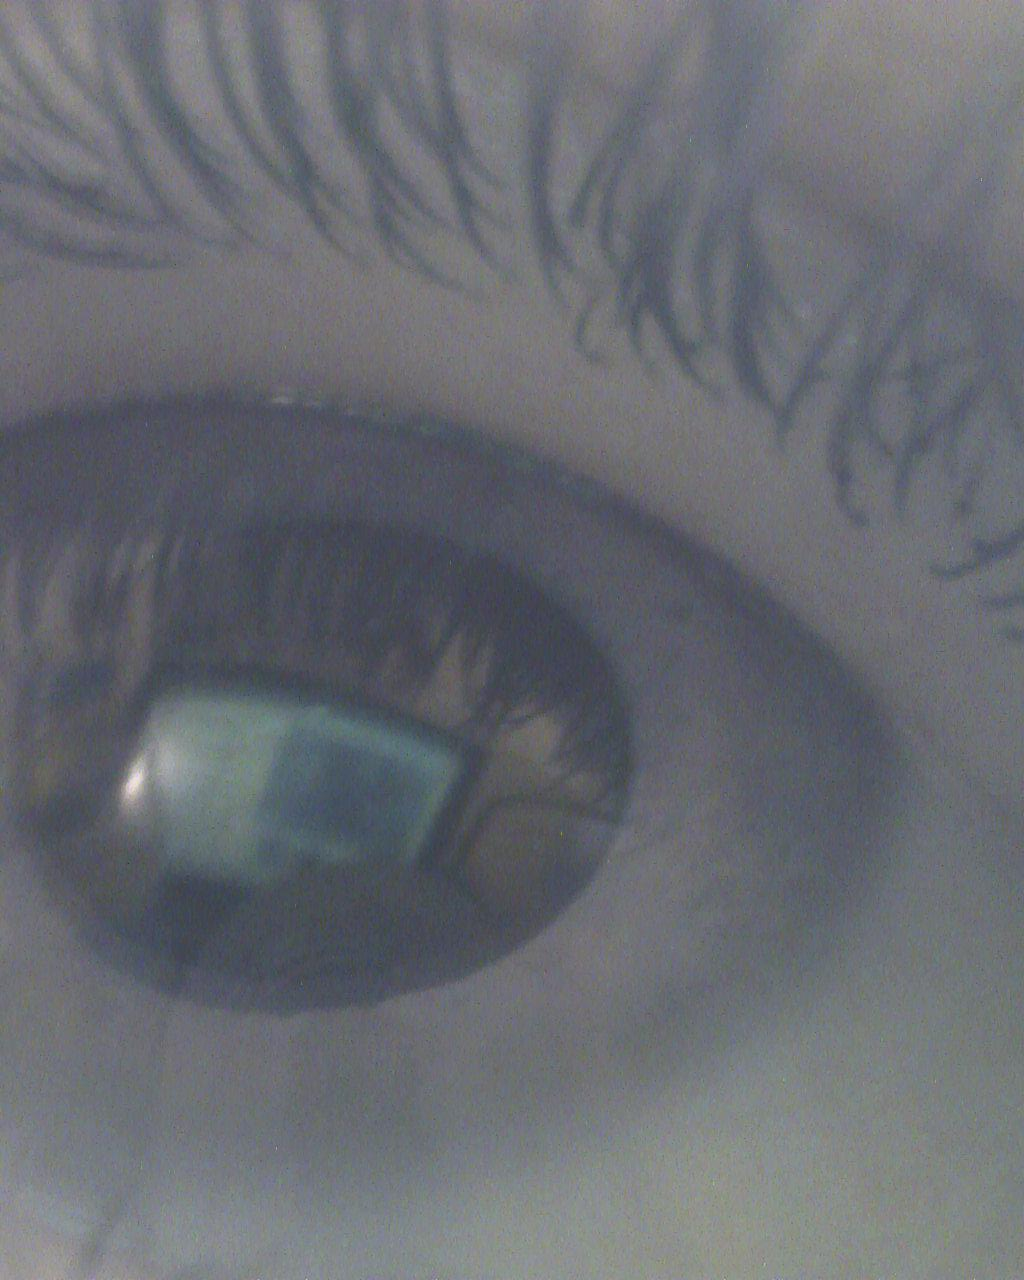 Clear reflection of my laptop in a black and white microscope image of my eye